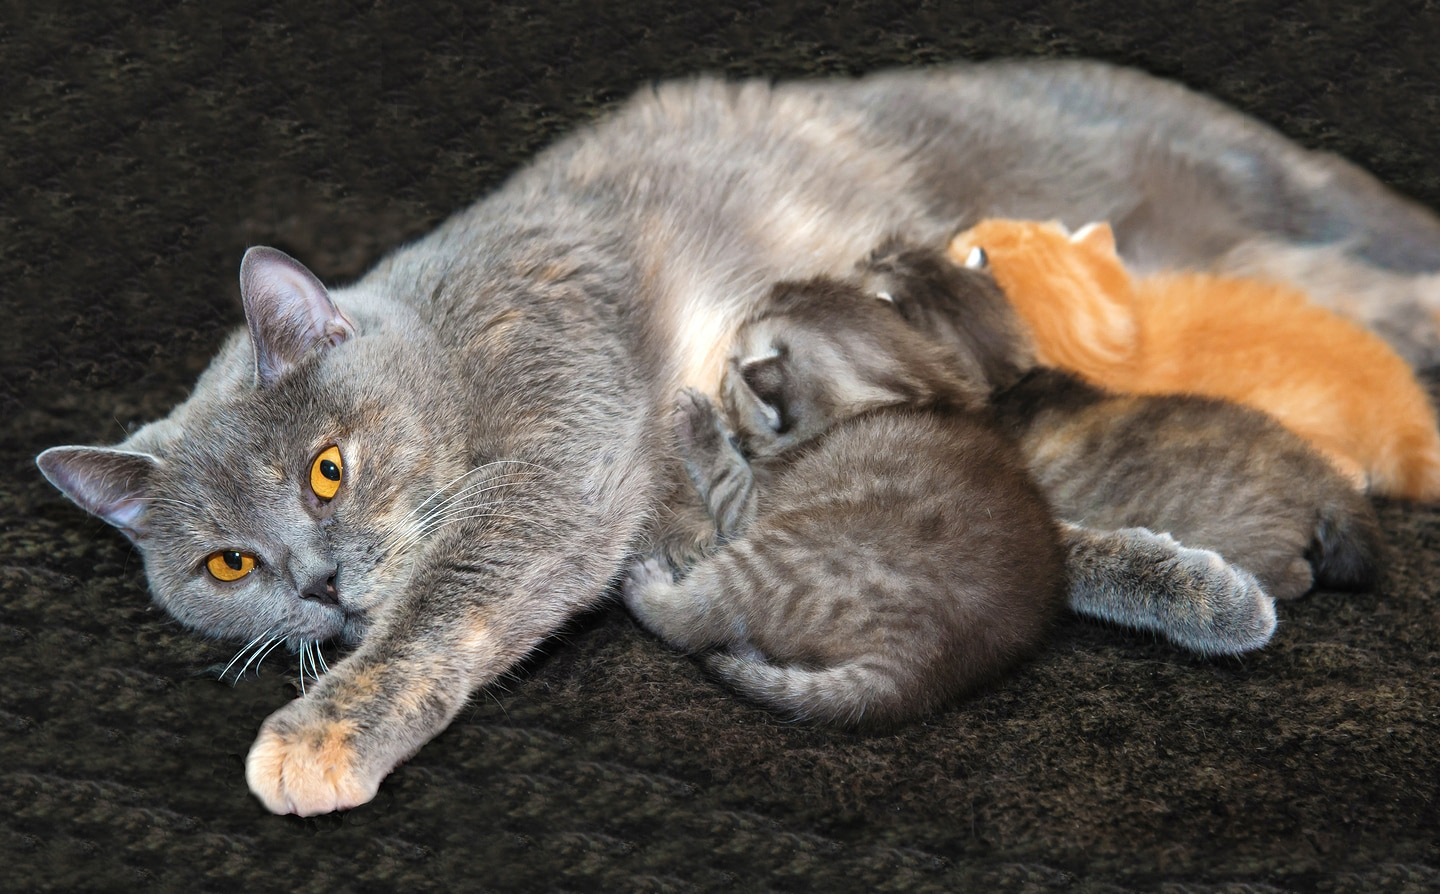 Gray cat with bright yellow eyes nursing kittens